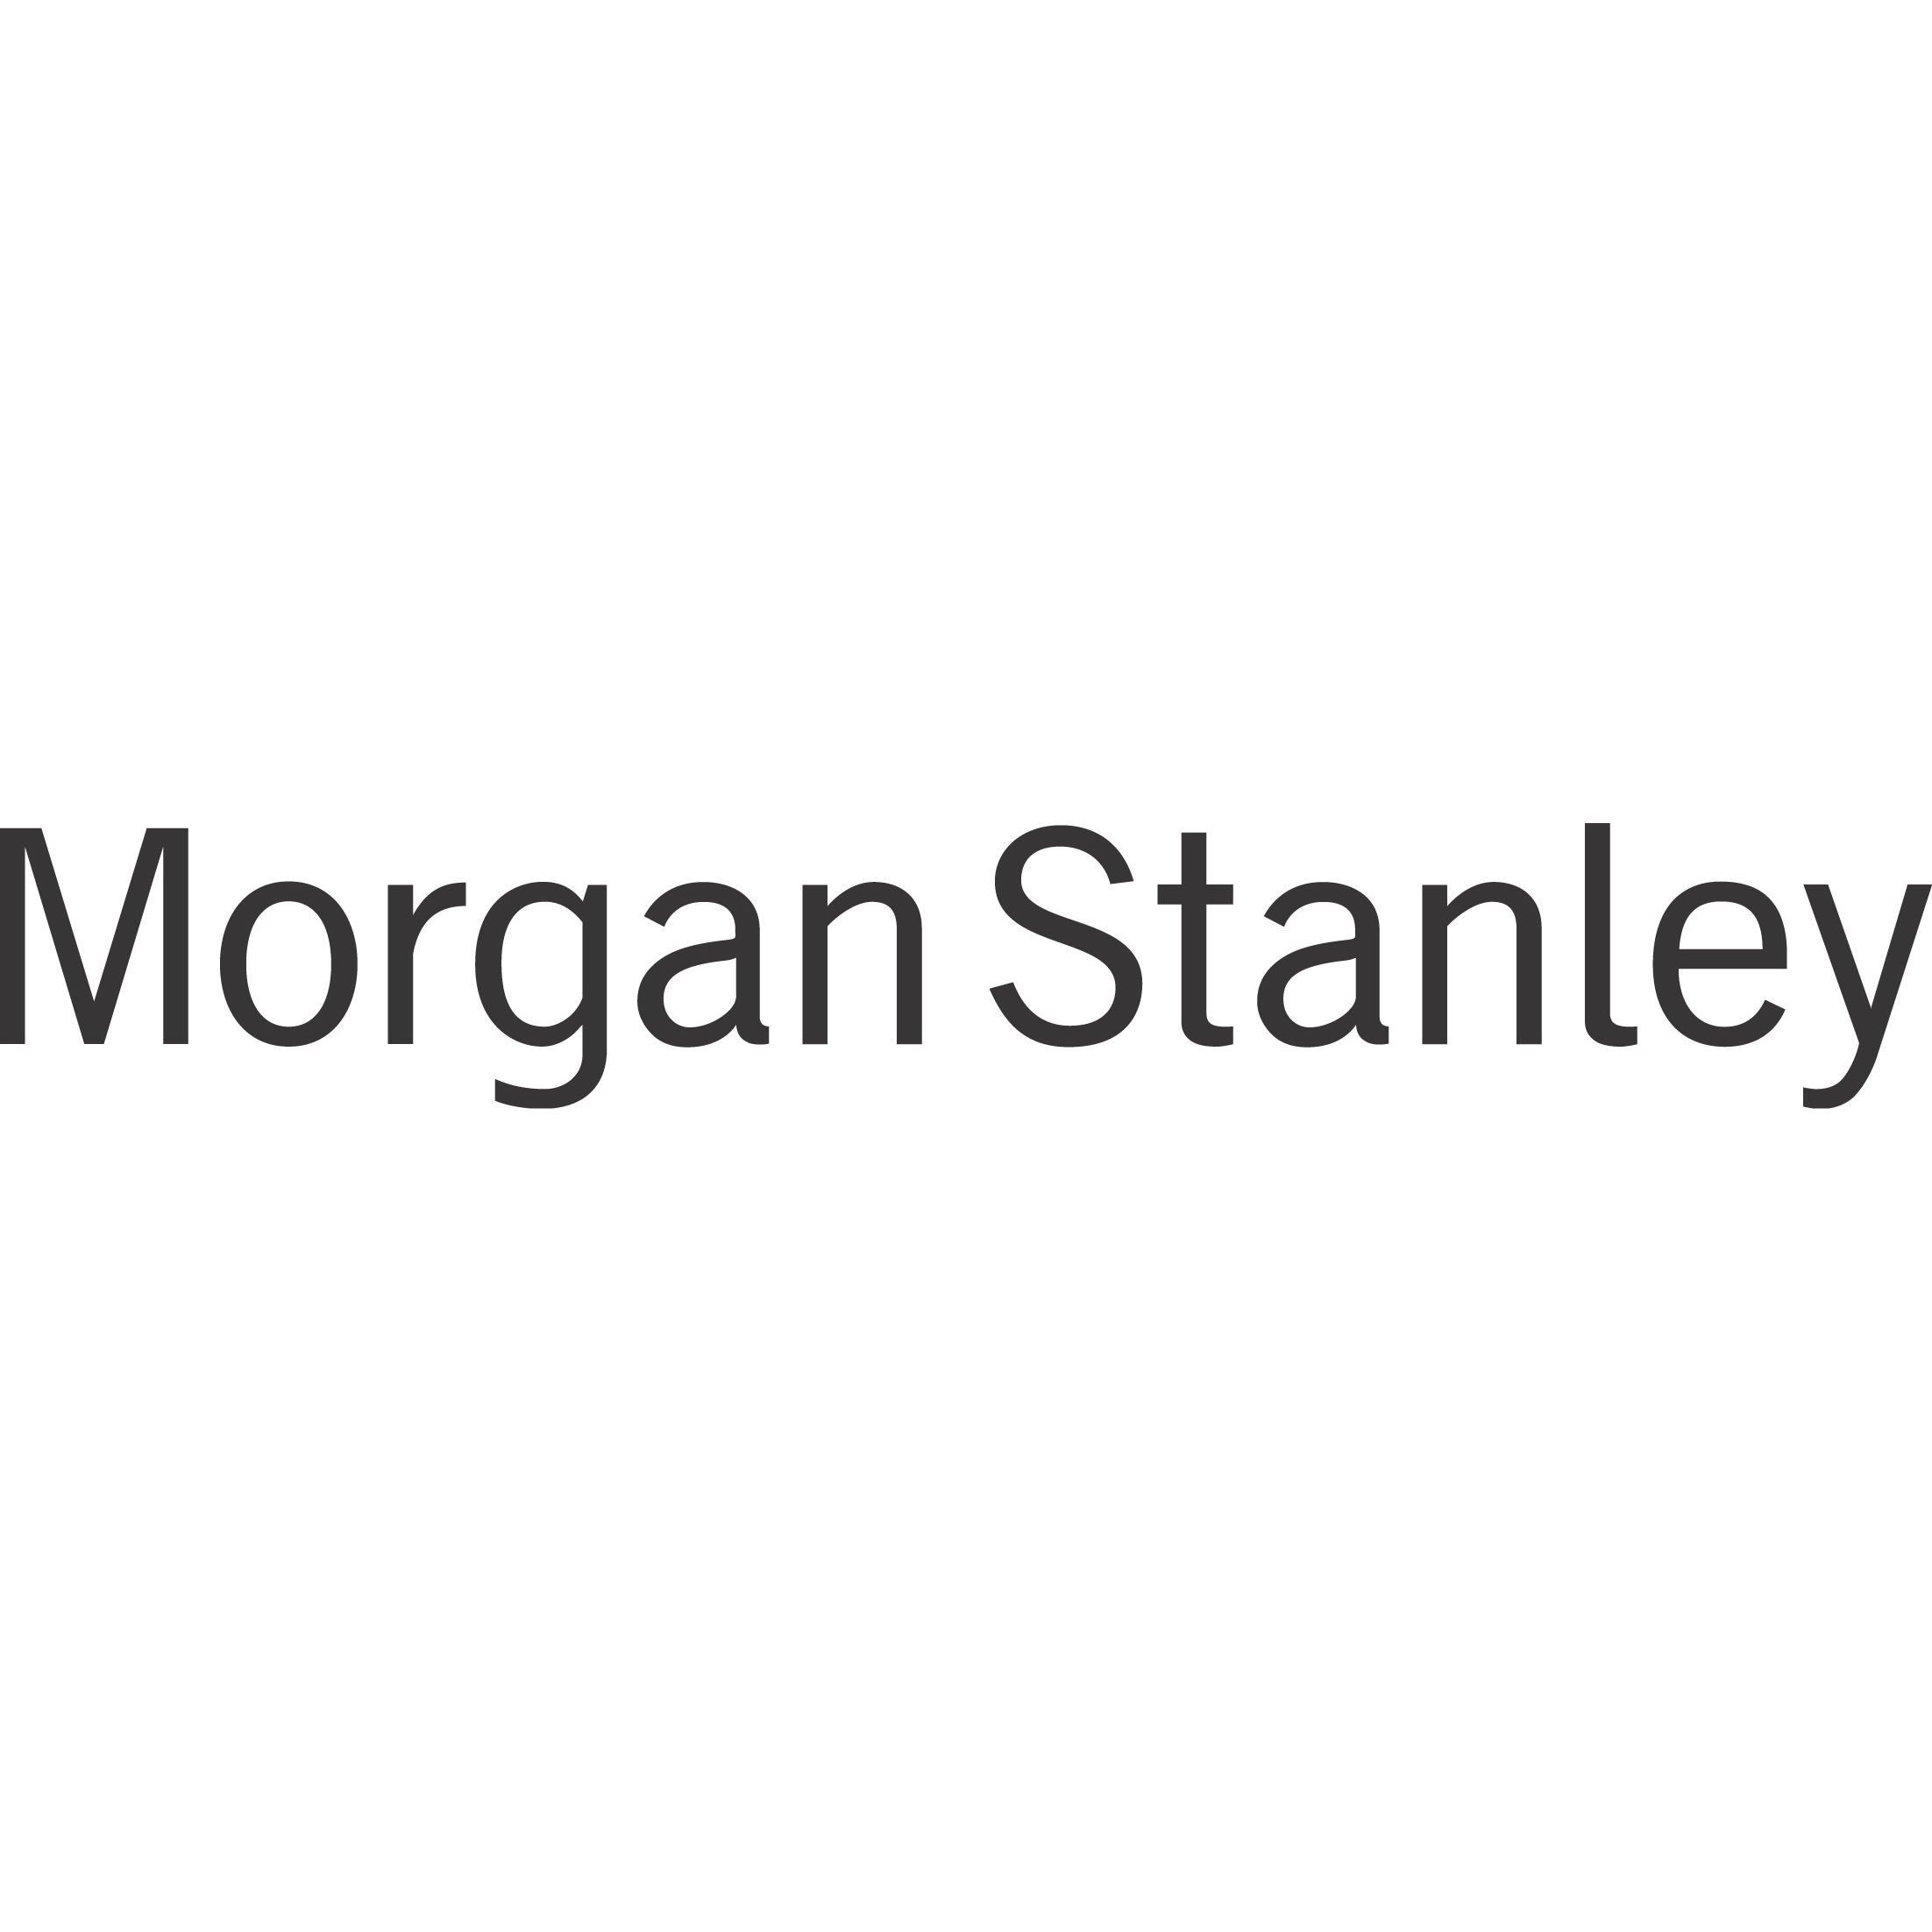 Jesse Weiner - Morgan Stanley | Financial Advisor in Orinda,California